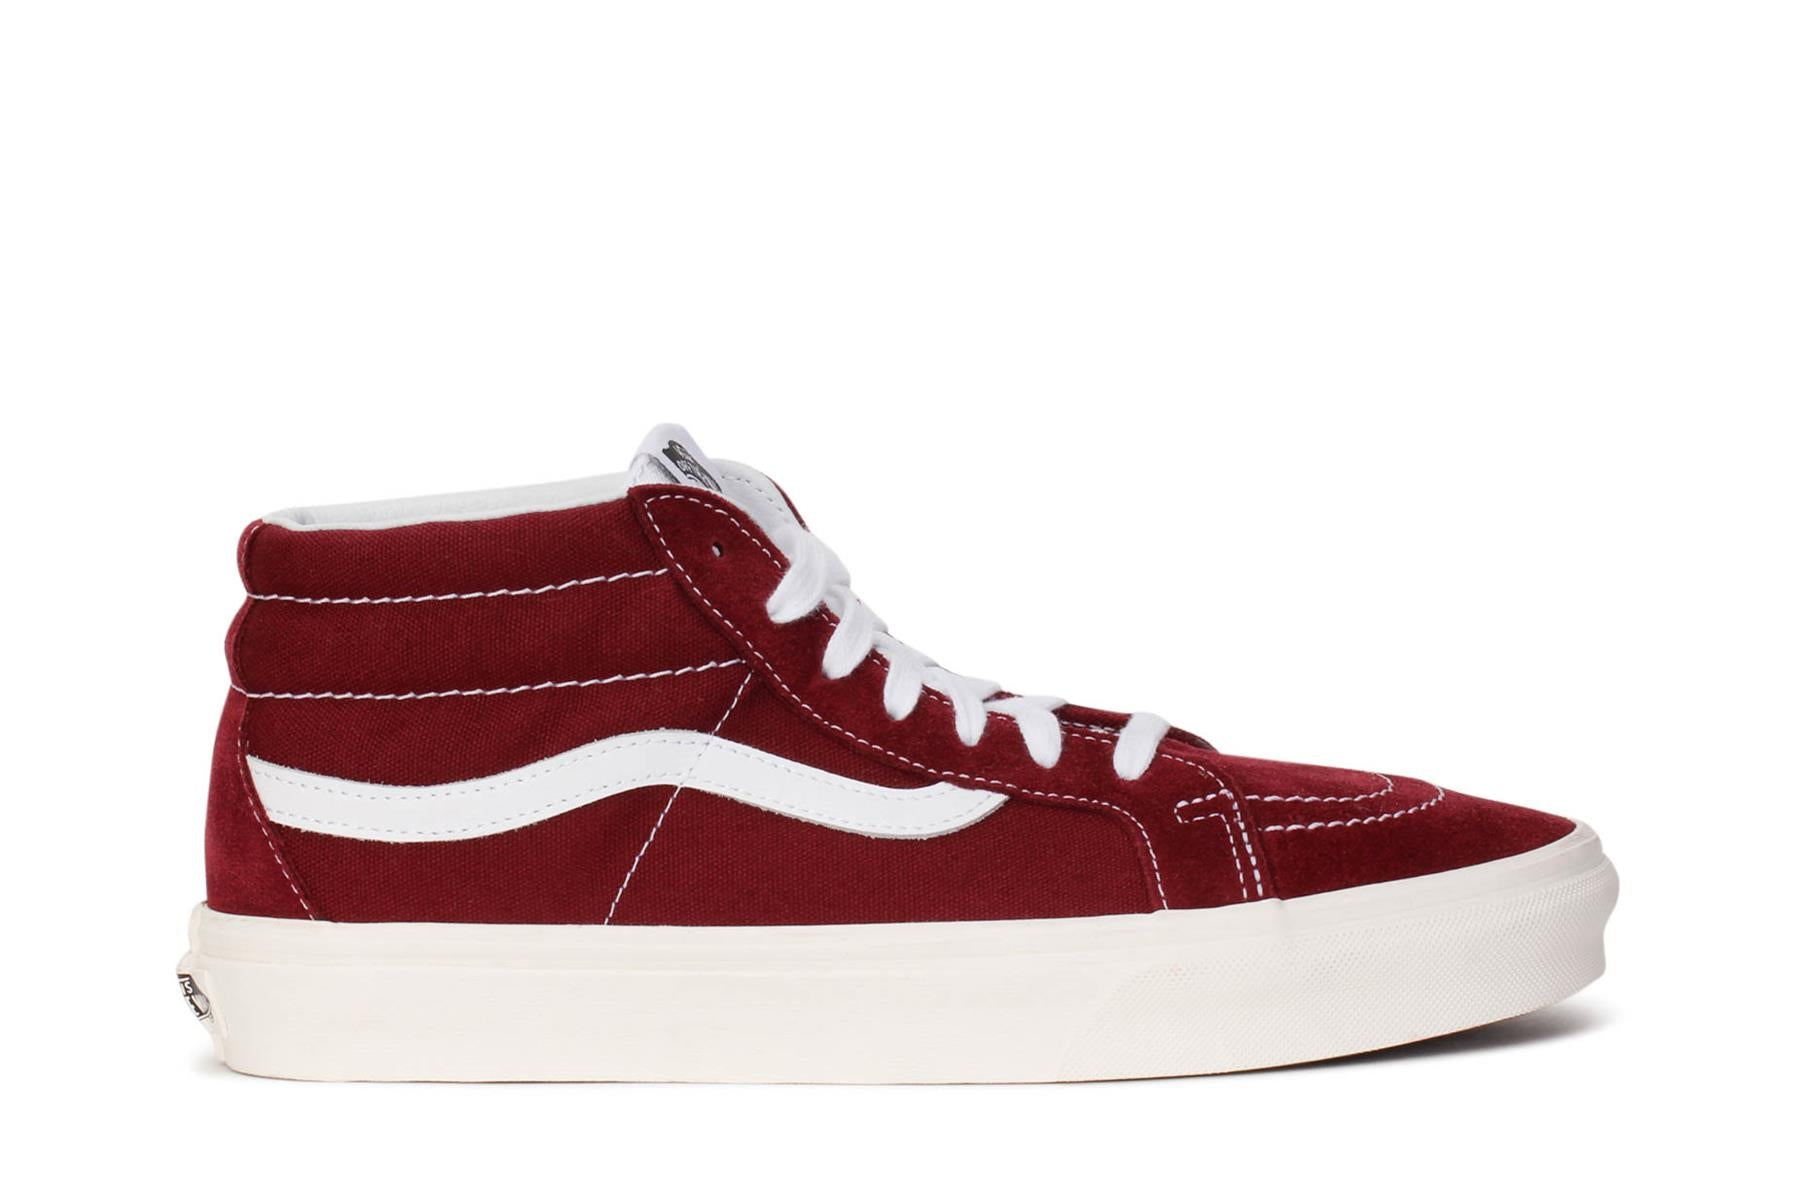 vans-mens-sneakers-sk8-mid-reissue-retro-sport-port-royale-vn0a3mv8u8m-main